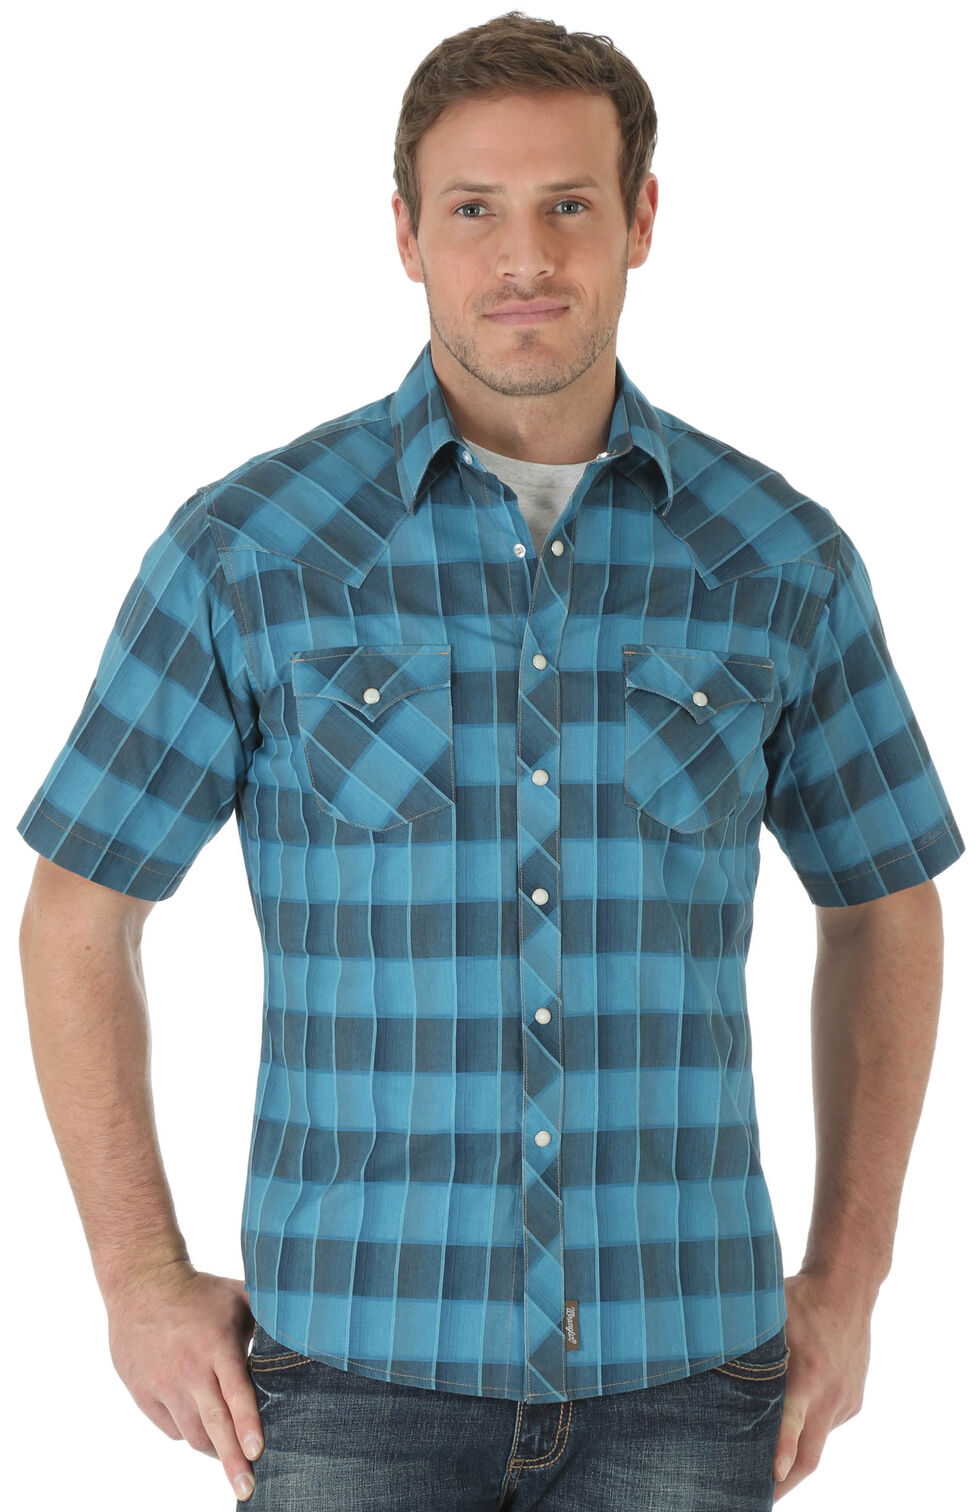 Wrangler Retro Men's Short Sleeve Blue Checkered Shirt, Blue, hi-res